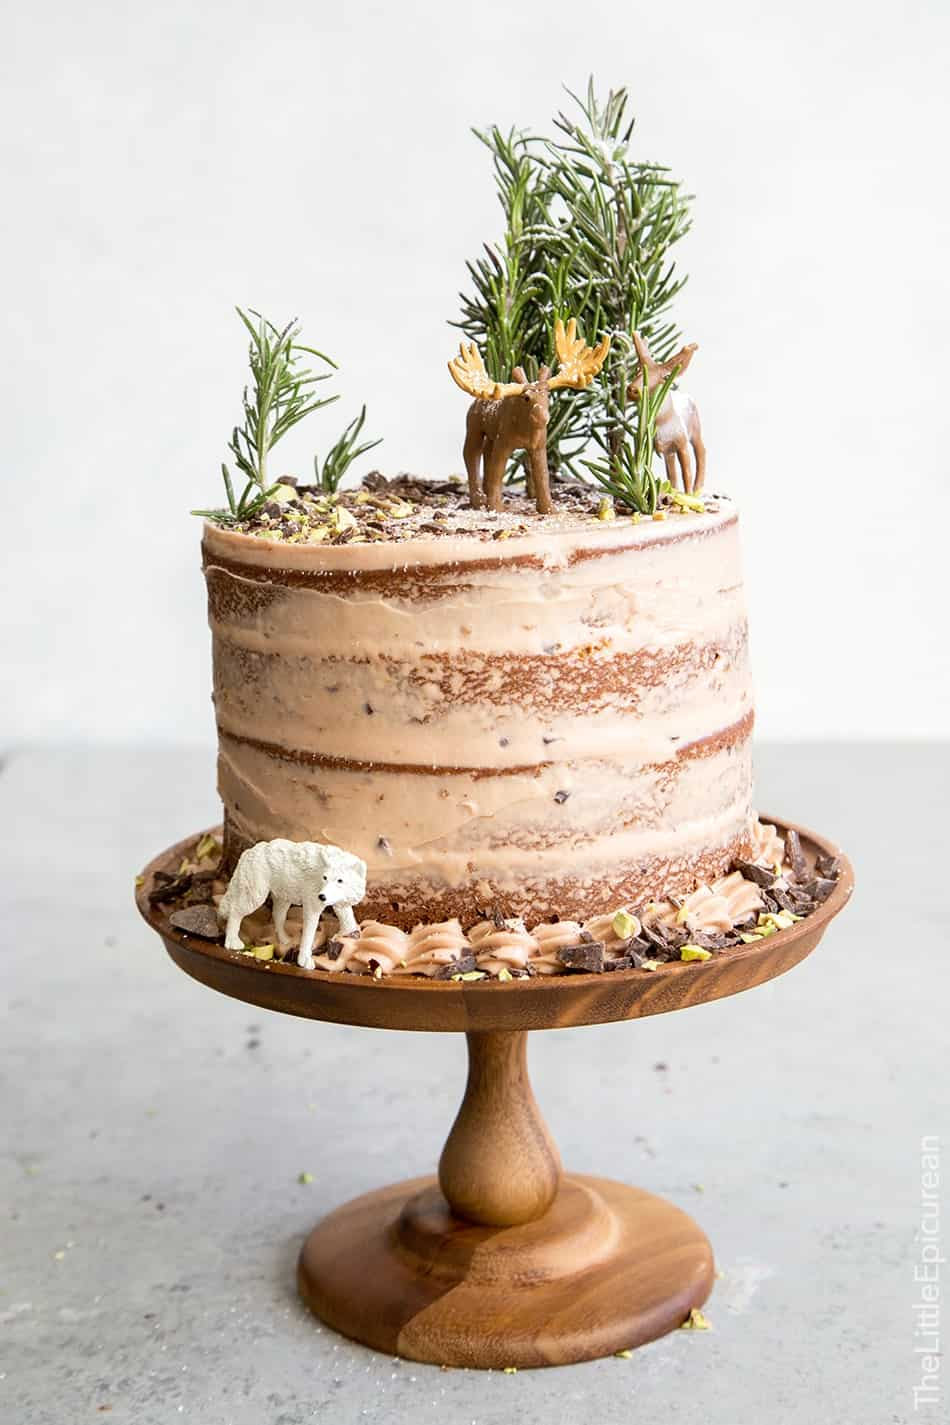 Rustic Chocolate Cake Recipe